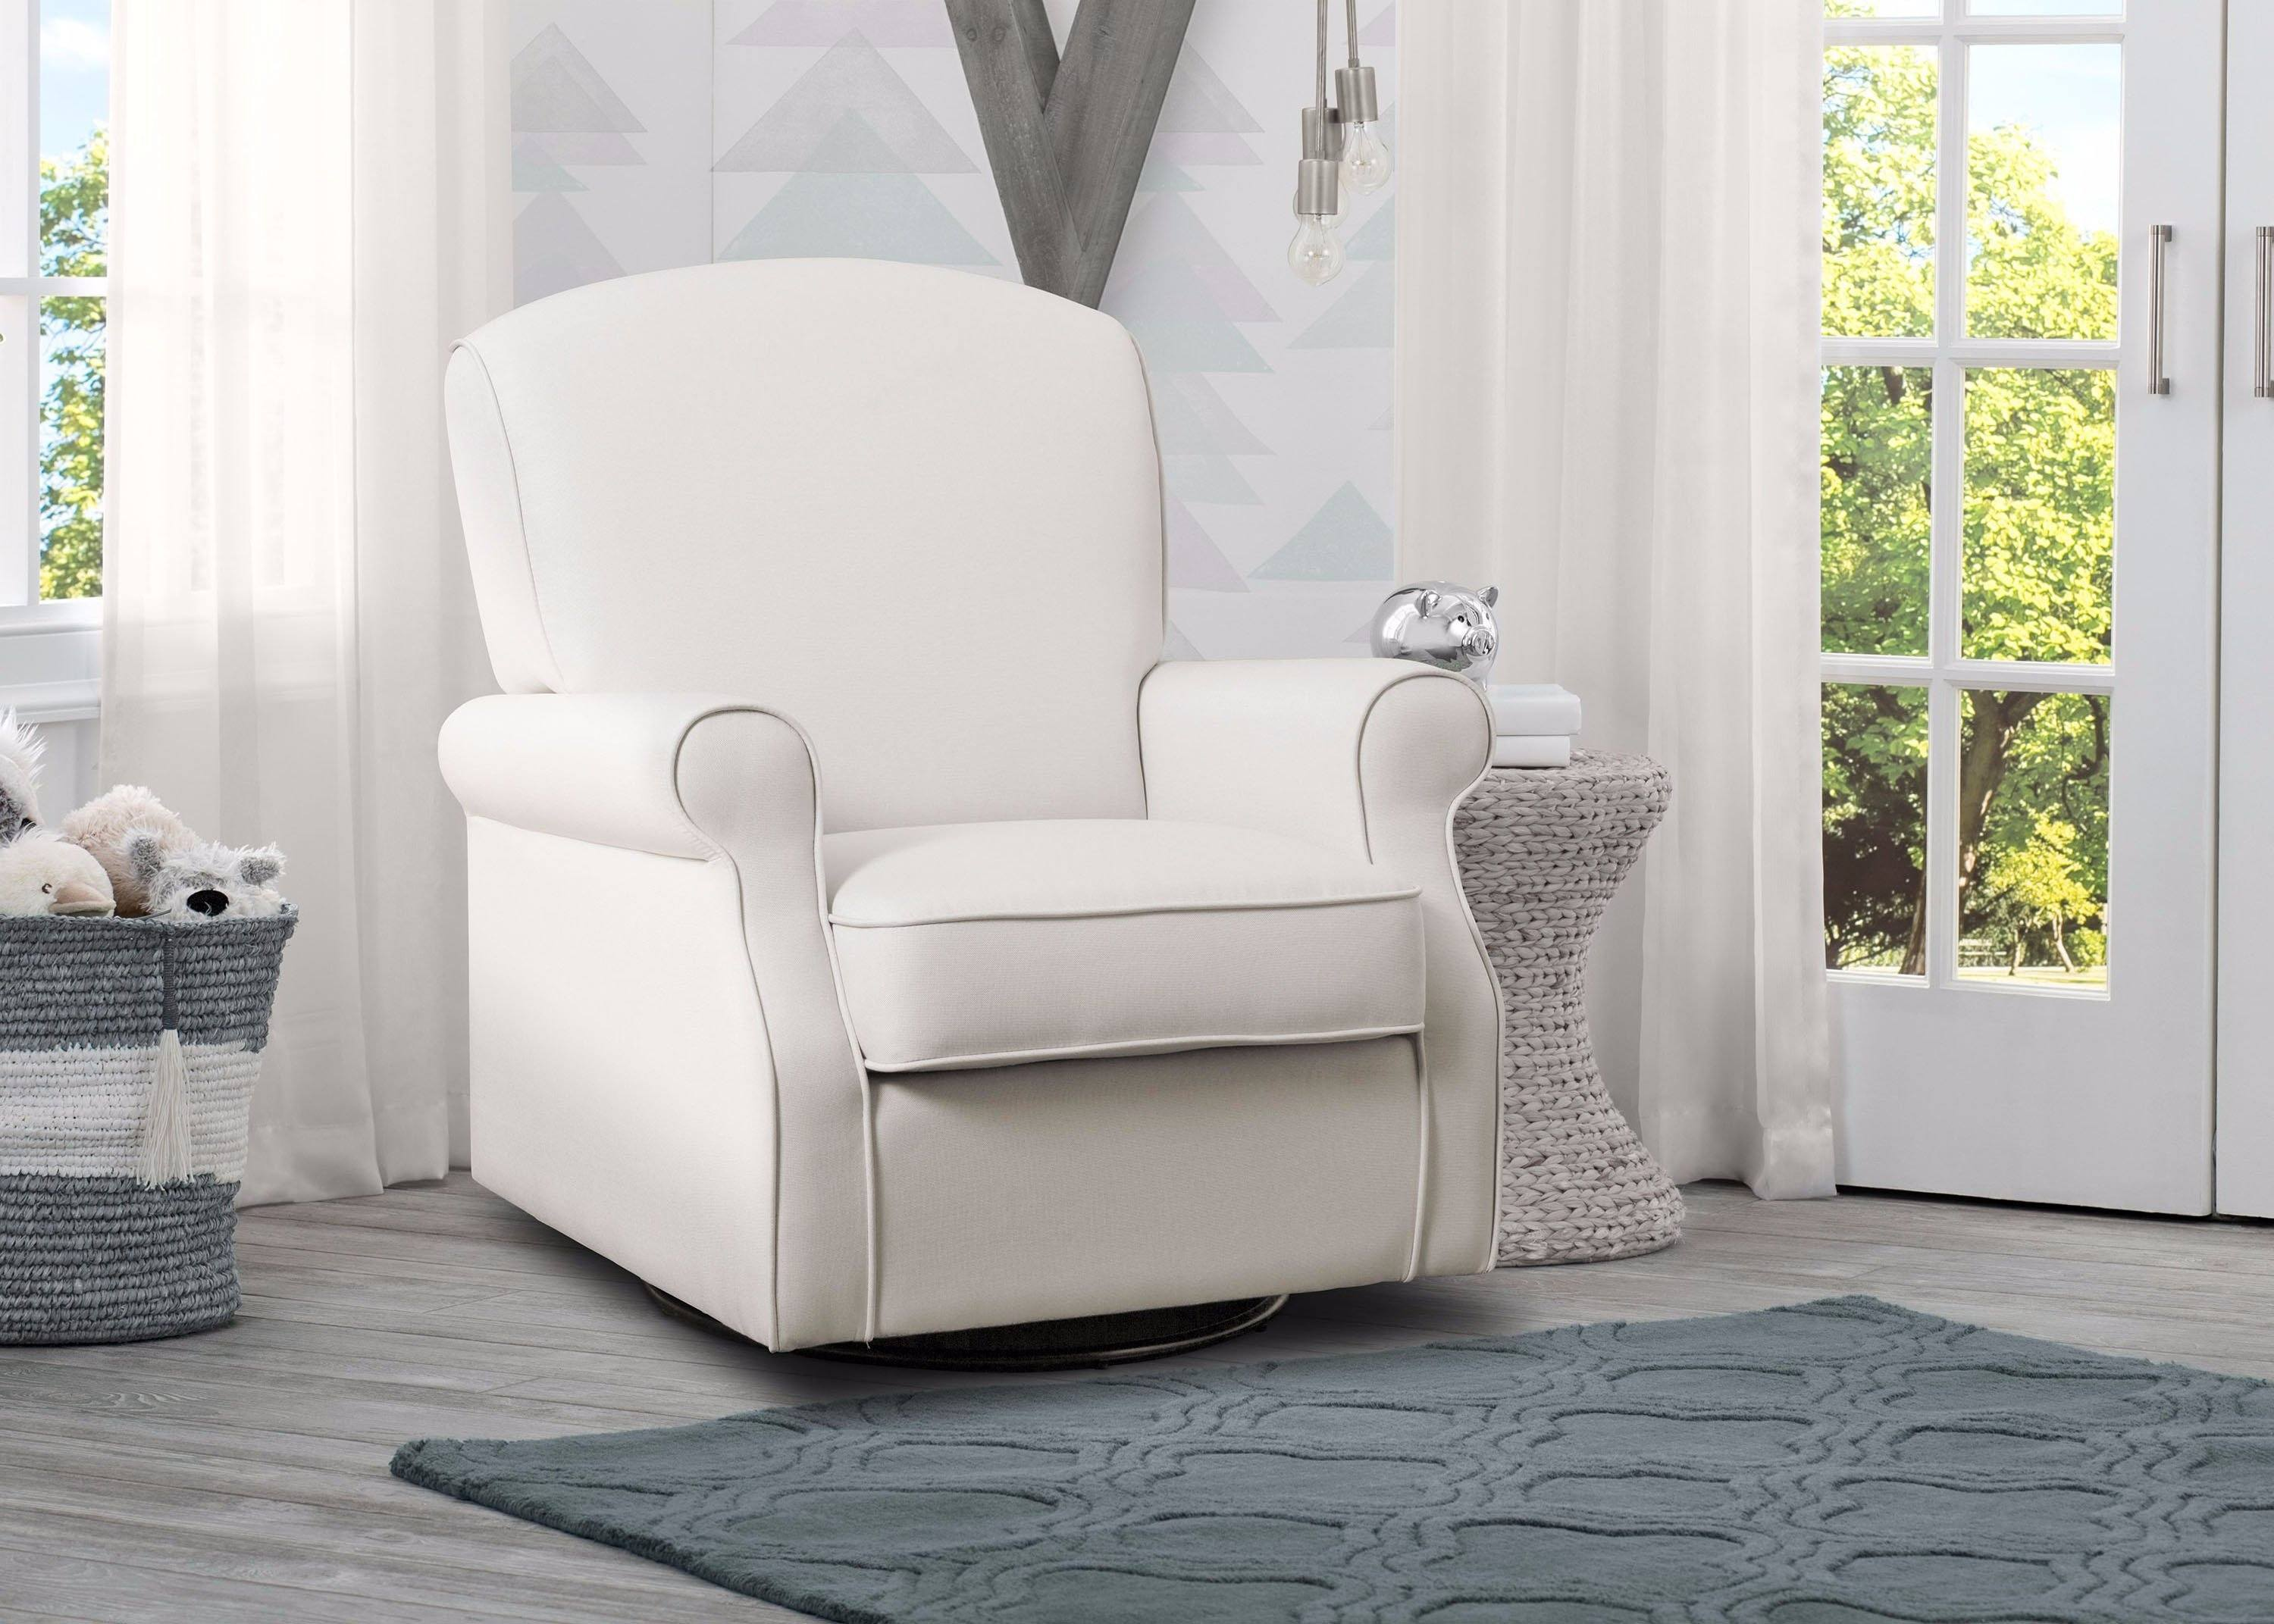 eng rocking chairs livings details living room rockers glider products gliders baby bauer for kids swivel dorel eddie gray sourceimage